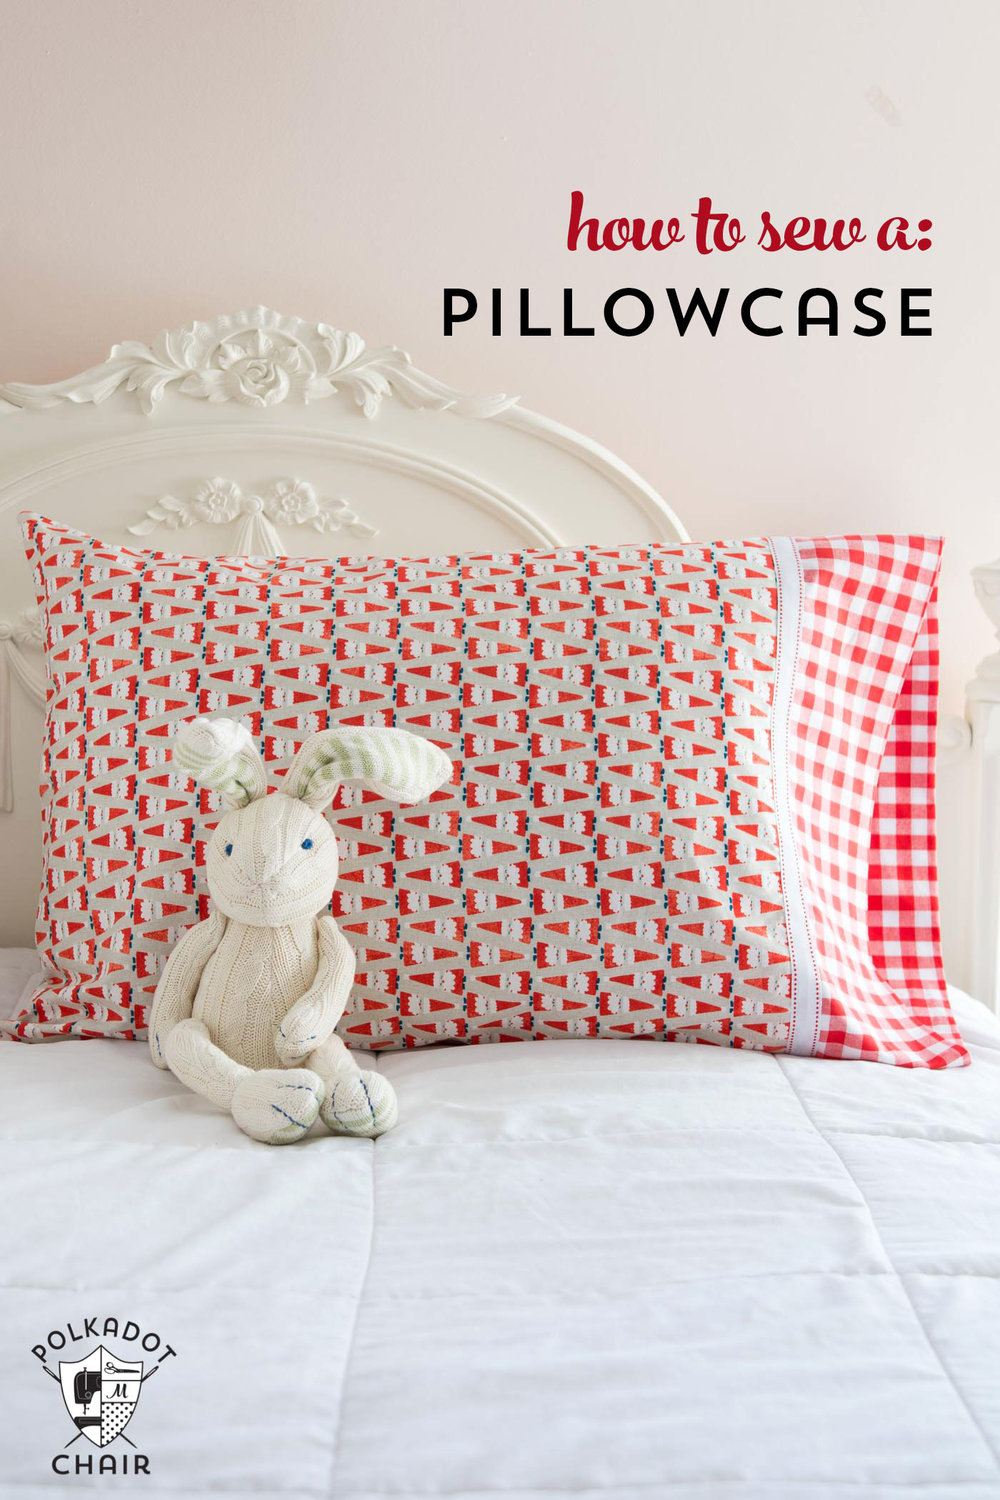 A QUICK AND EASY WAY TO SEW A PILLOWCASE from Polkadot Chair